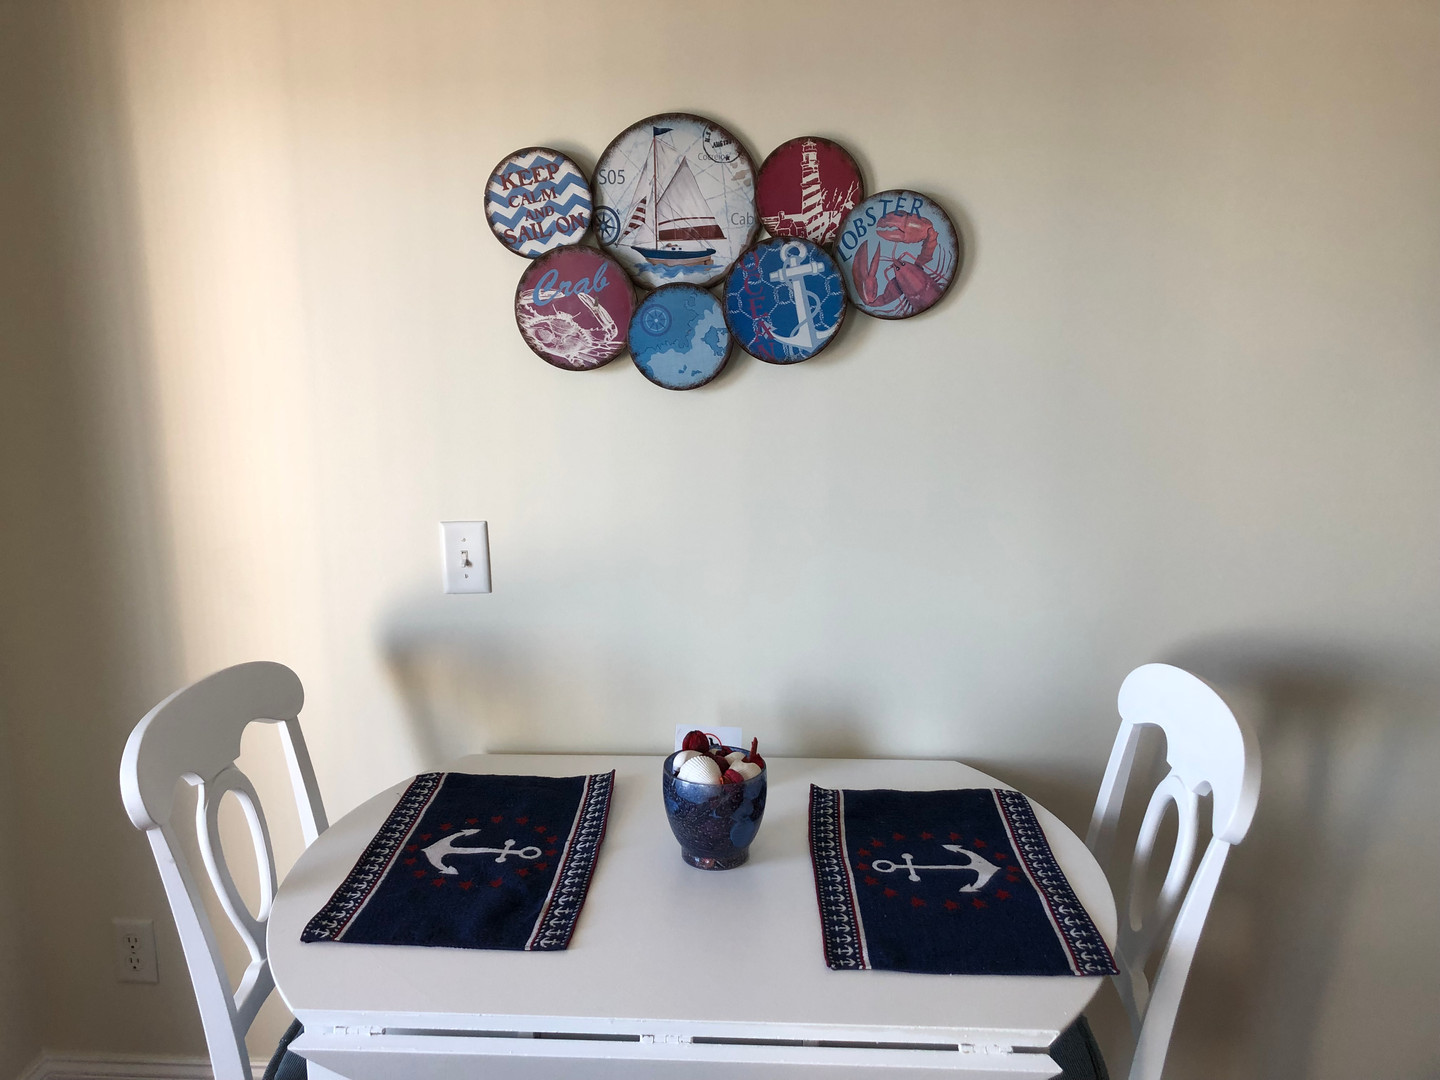 New Decor 2019.jpg